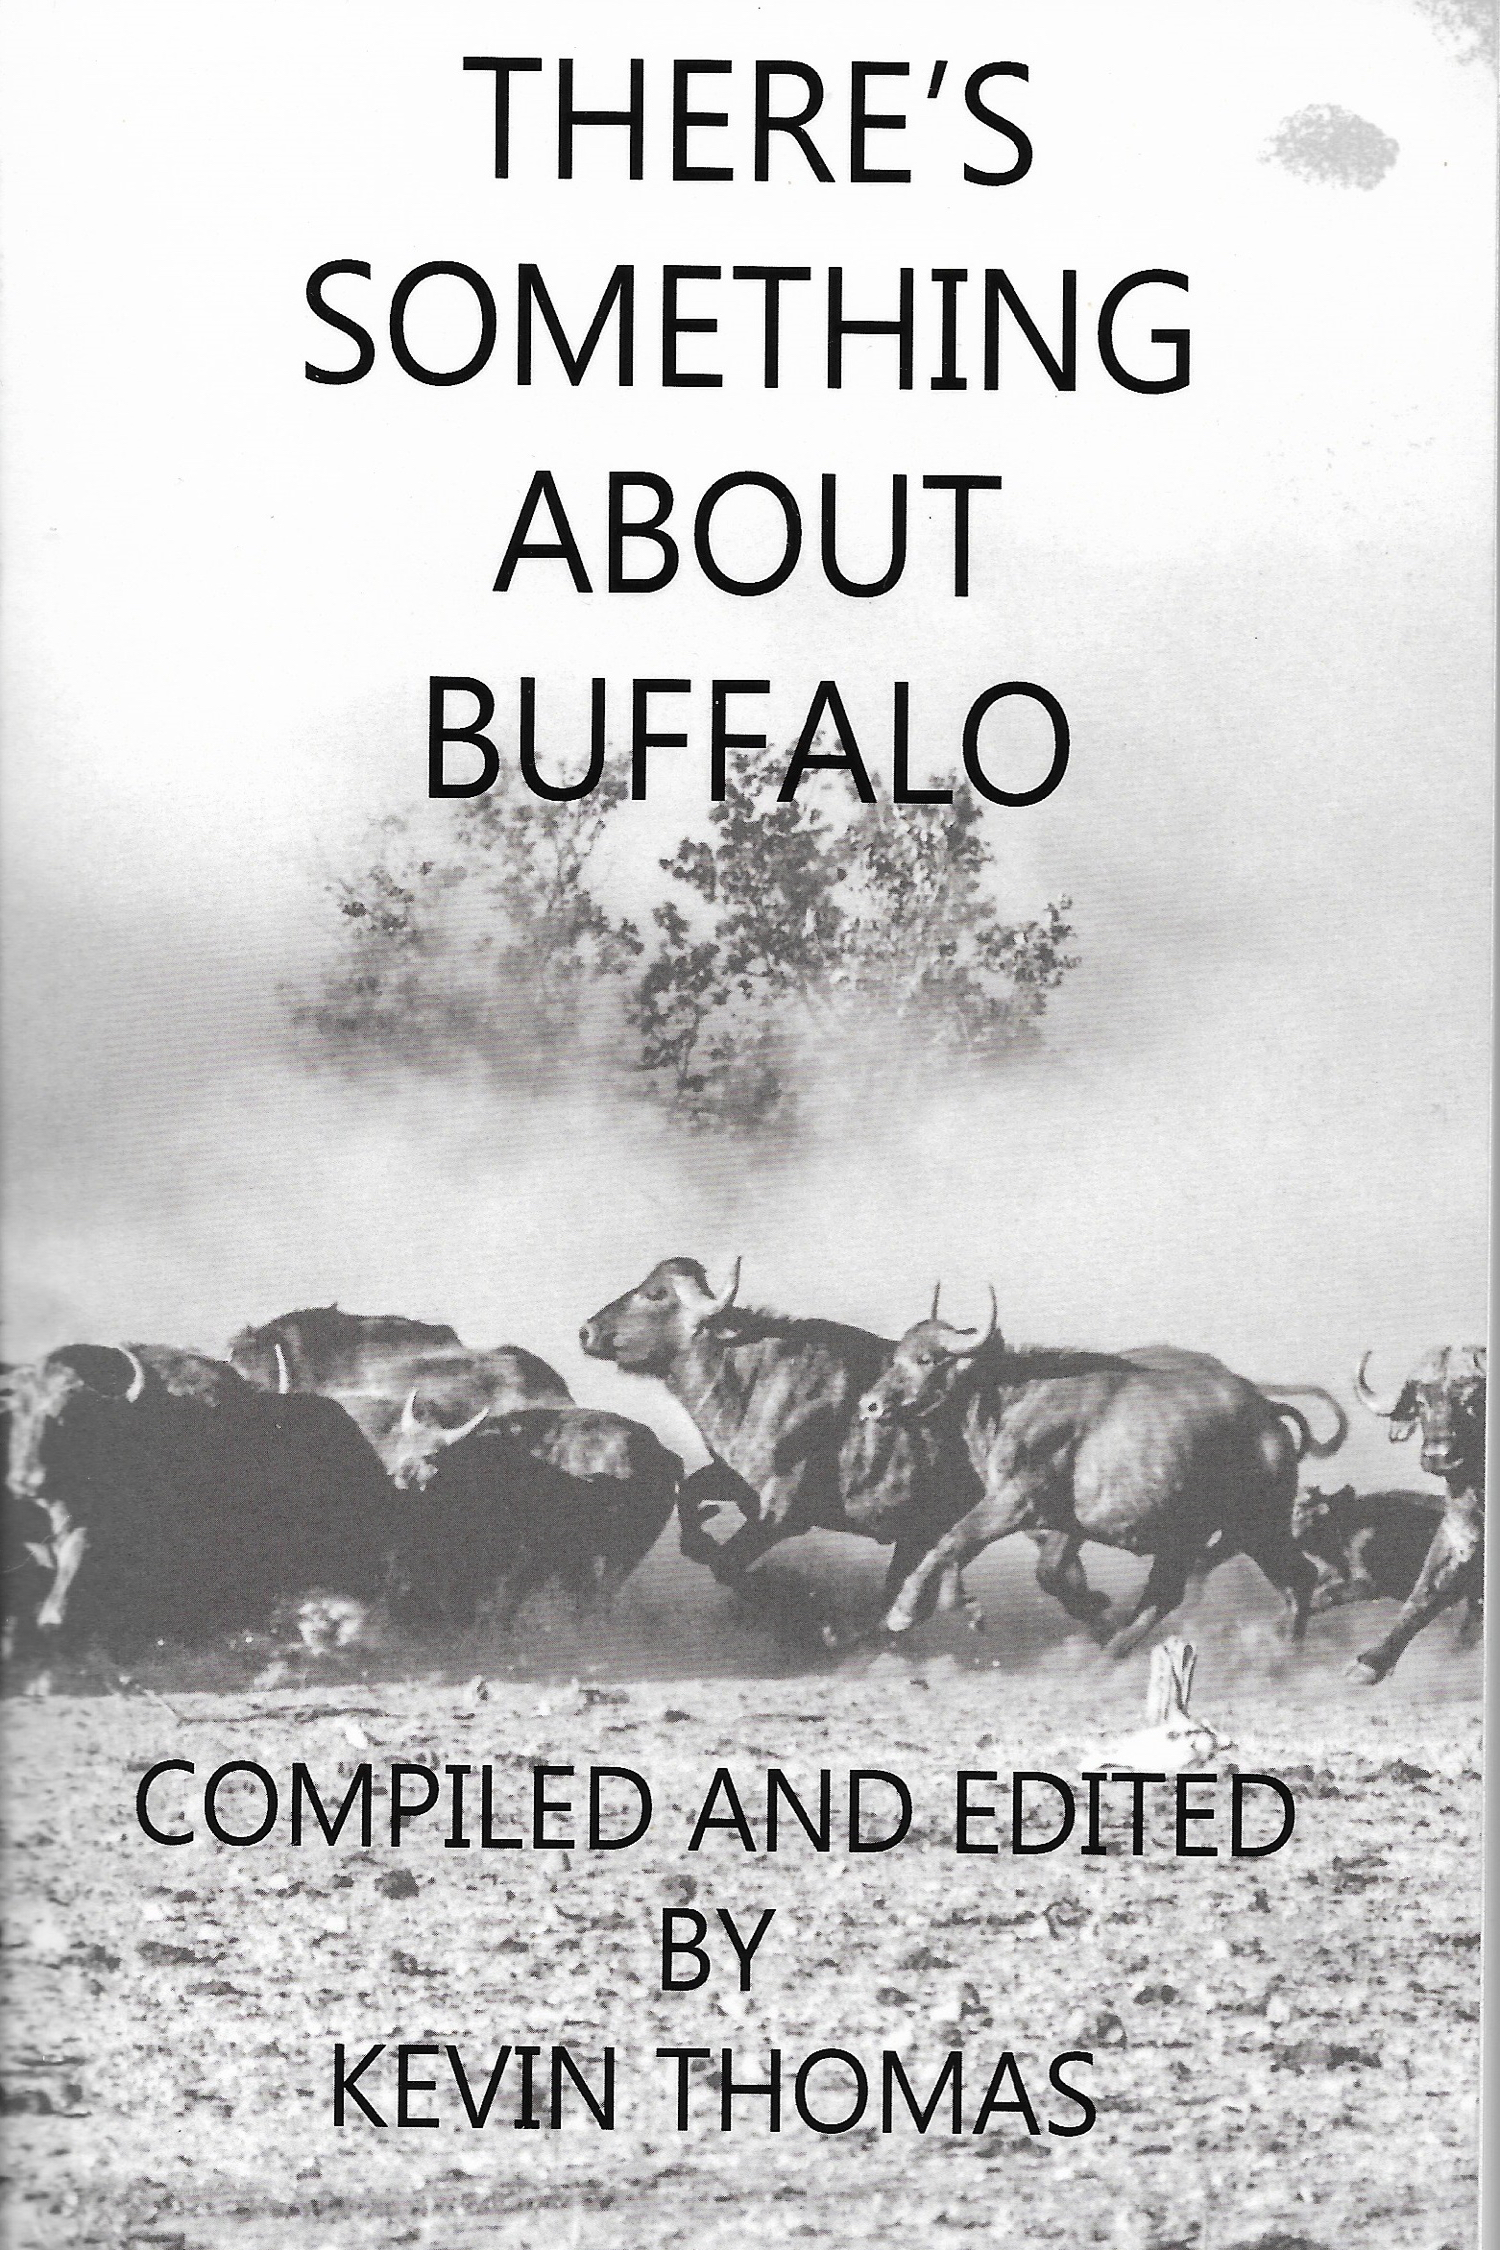 theres-something-about-buffalo-front.jpg